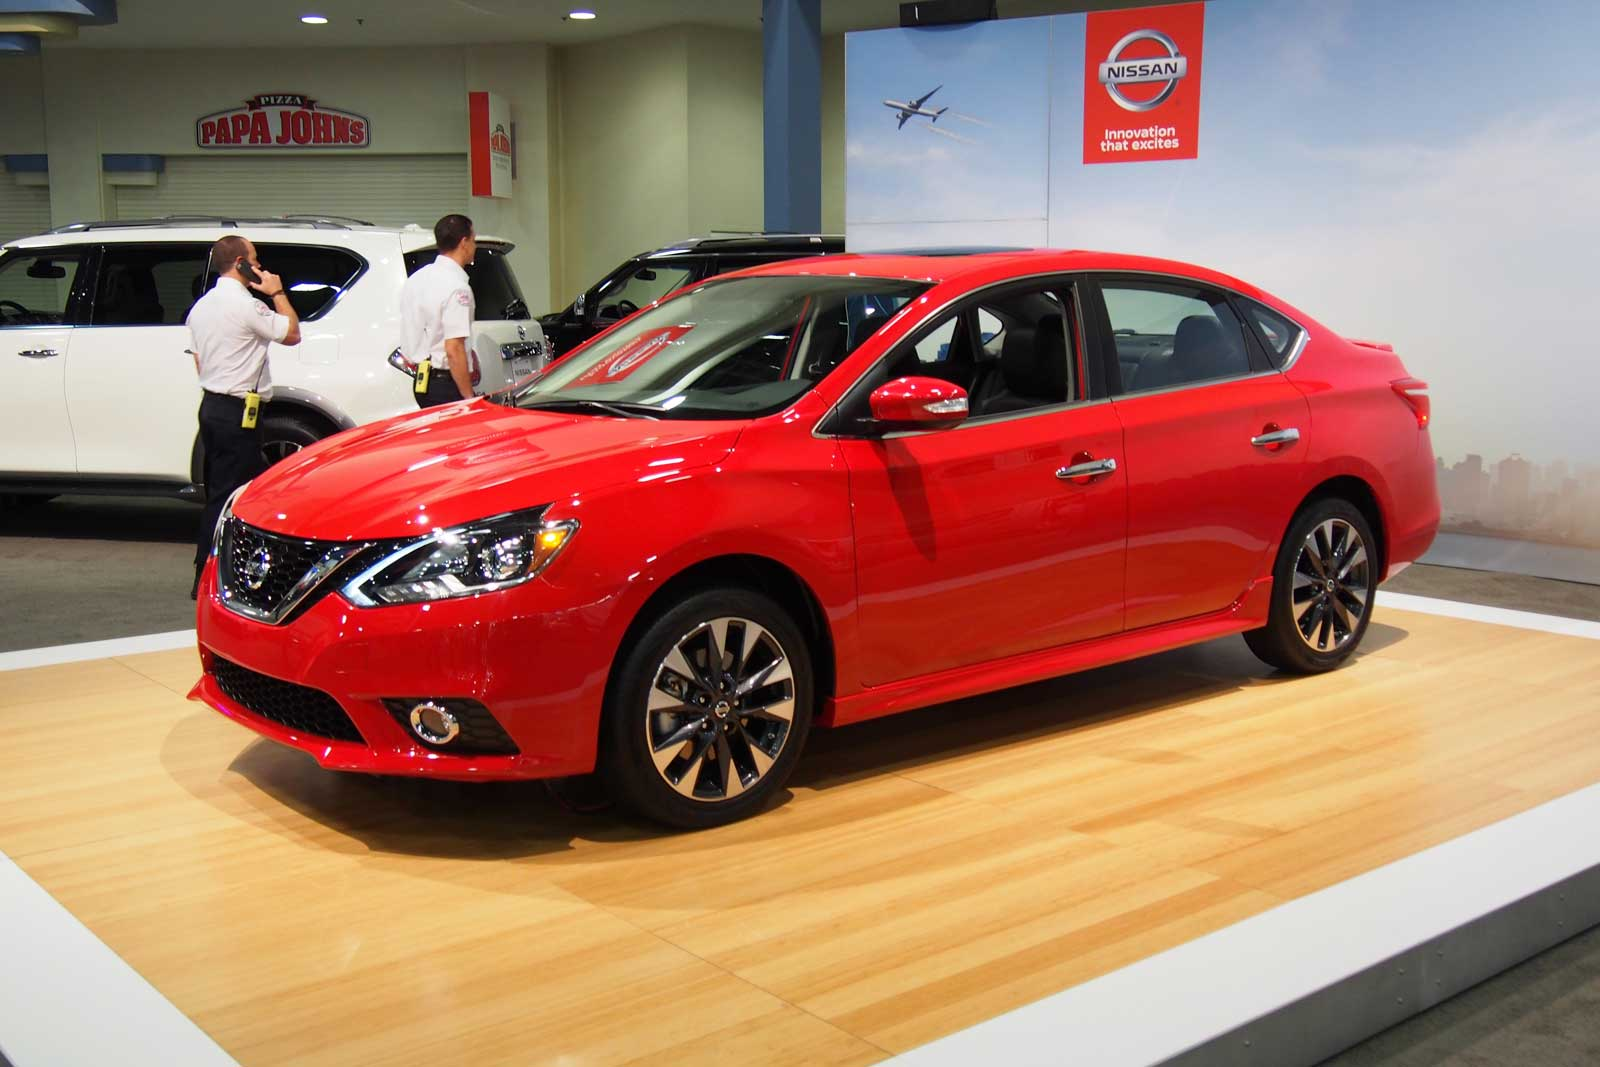 2017 Nissan Sentra Sr Turbo Finally Debuts